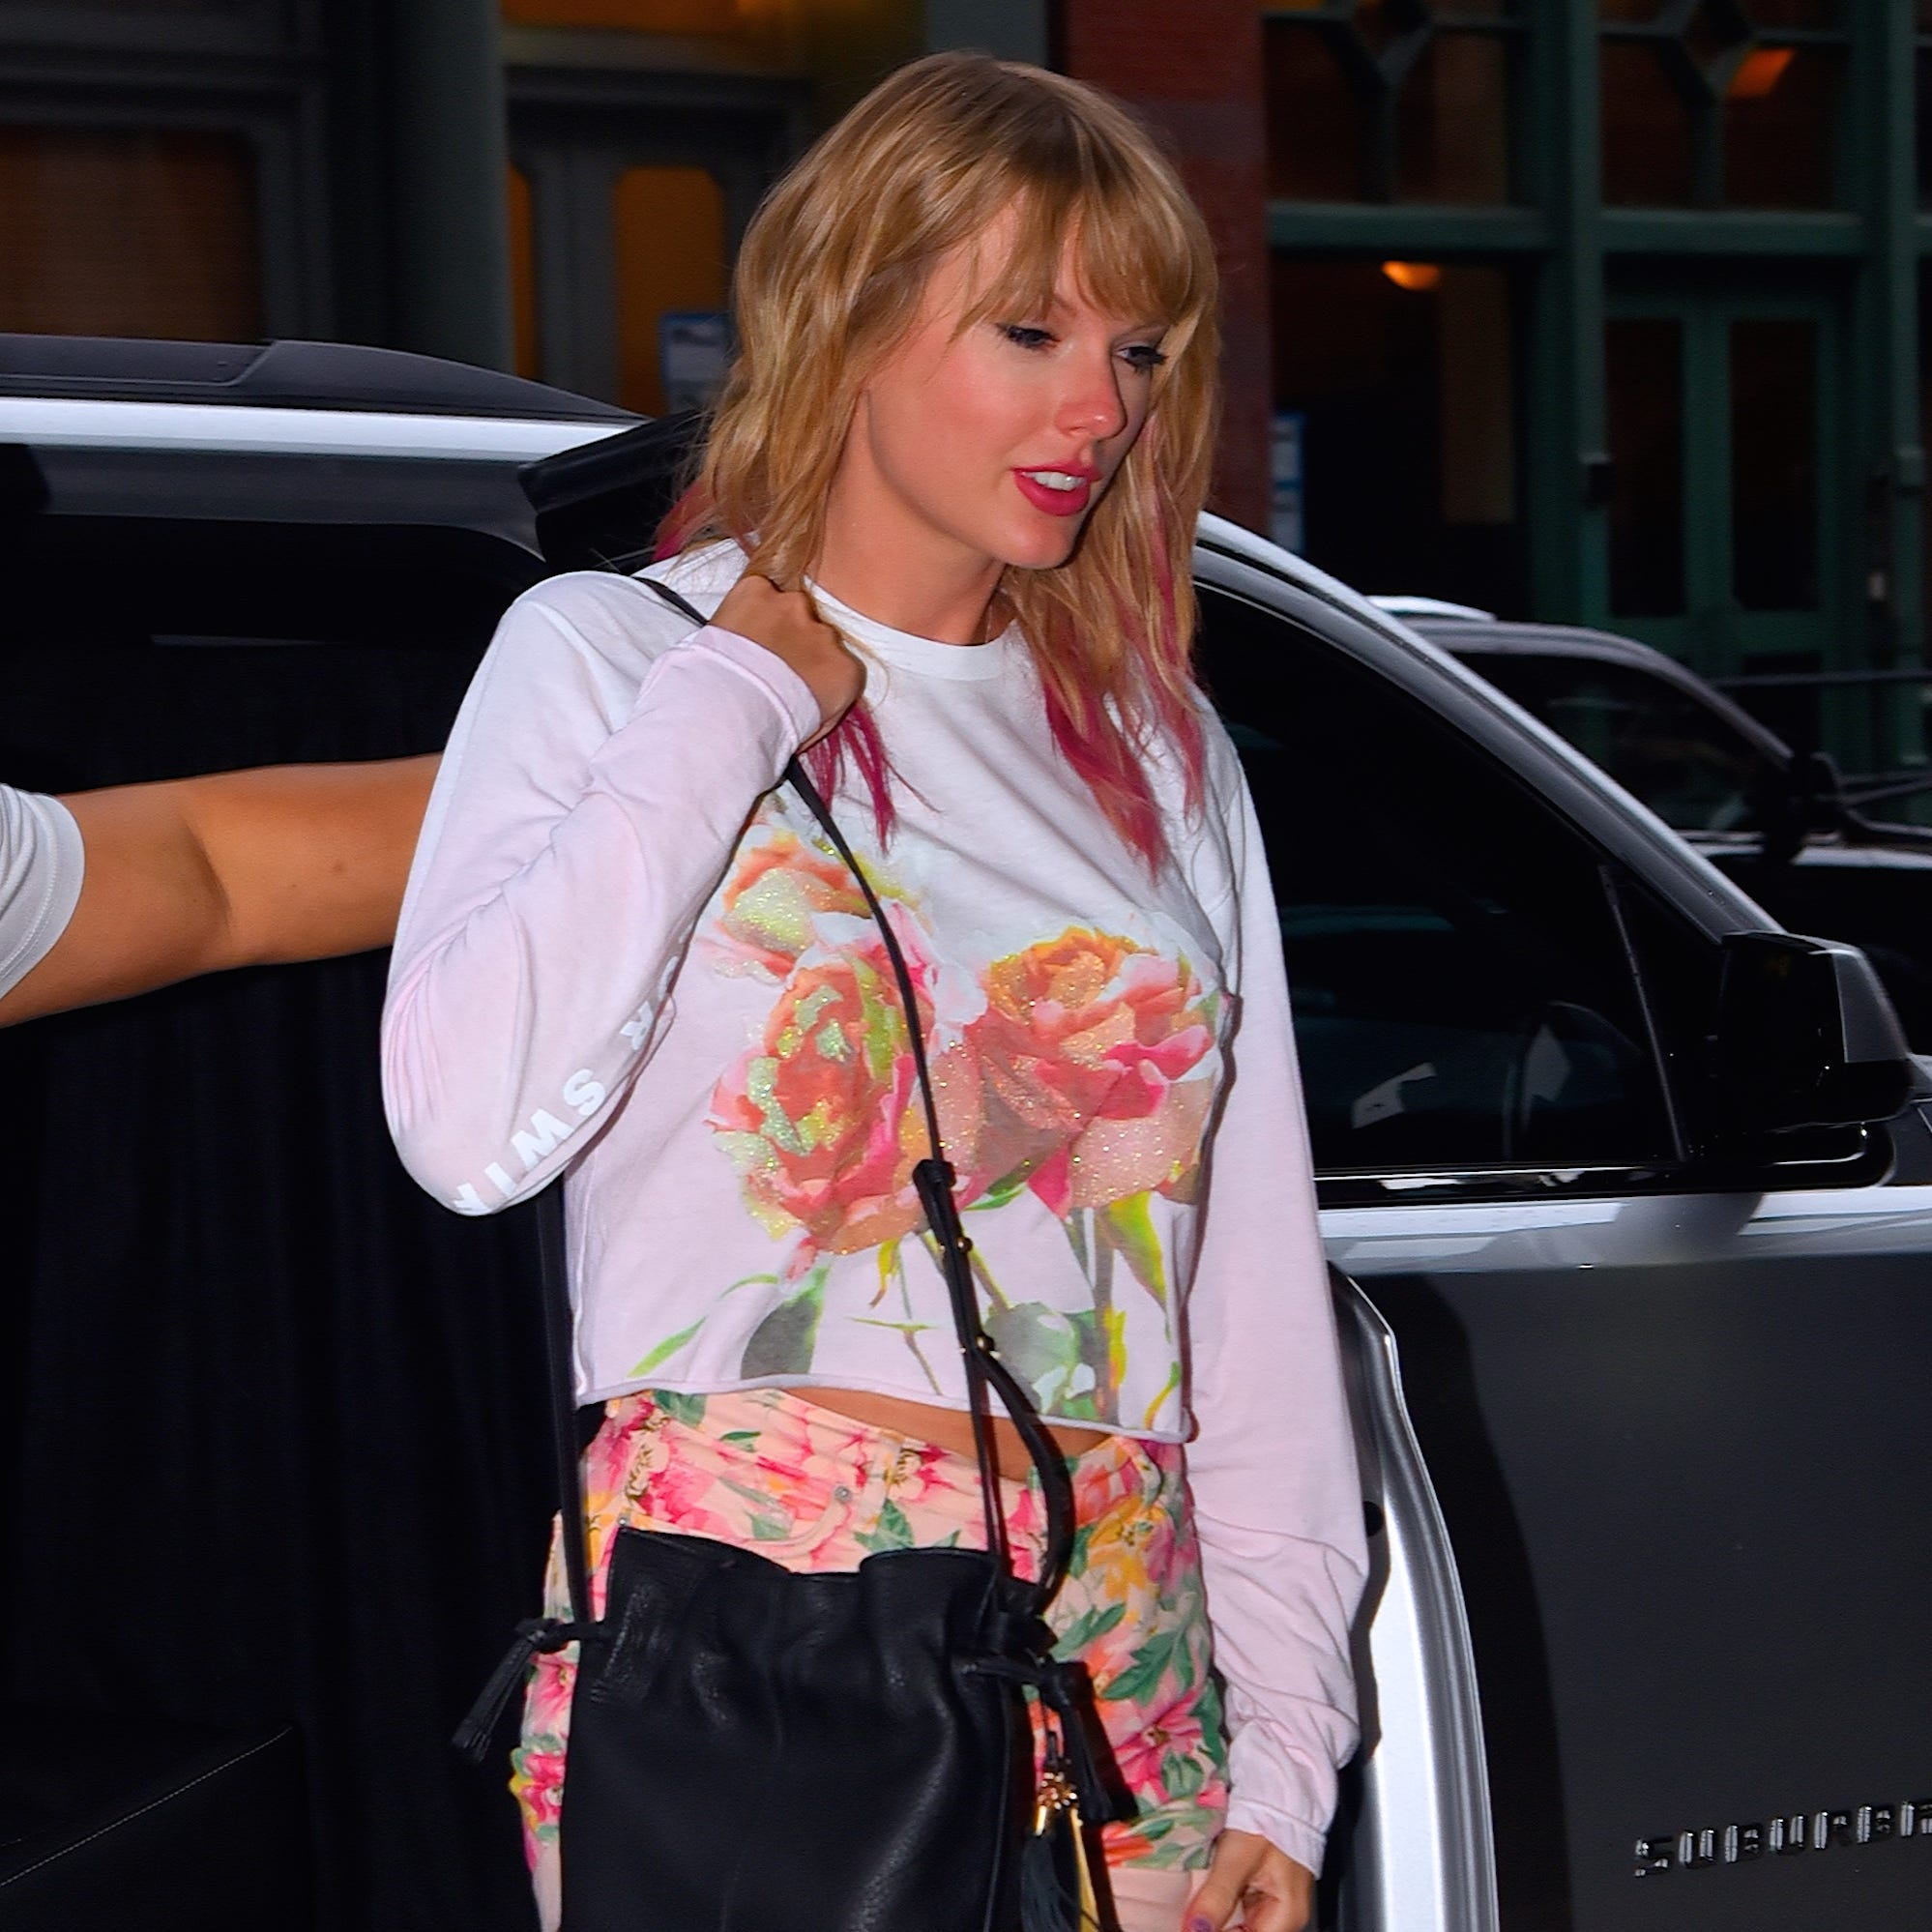 Taylor Swift debuted pink hair – as well as new merch –  while out and about in New York Tuesday.